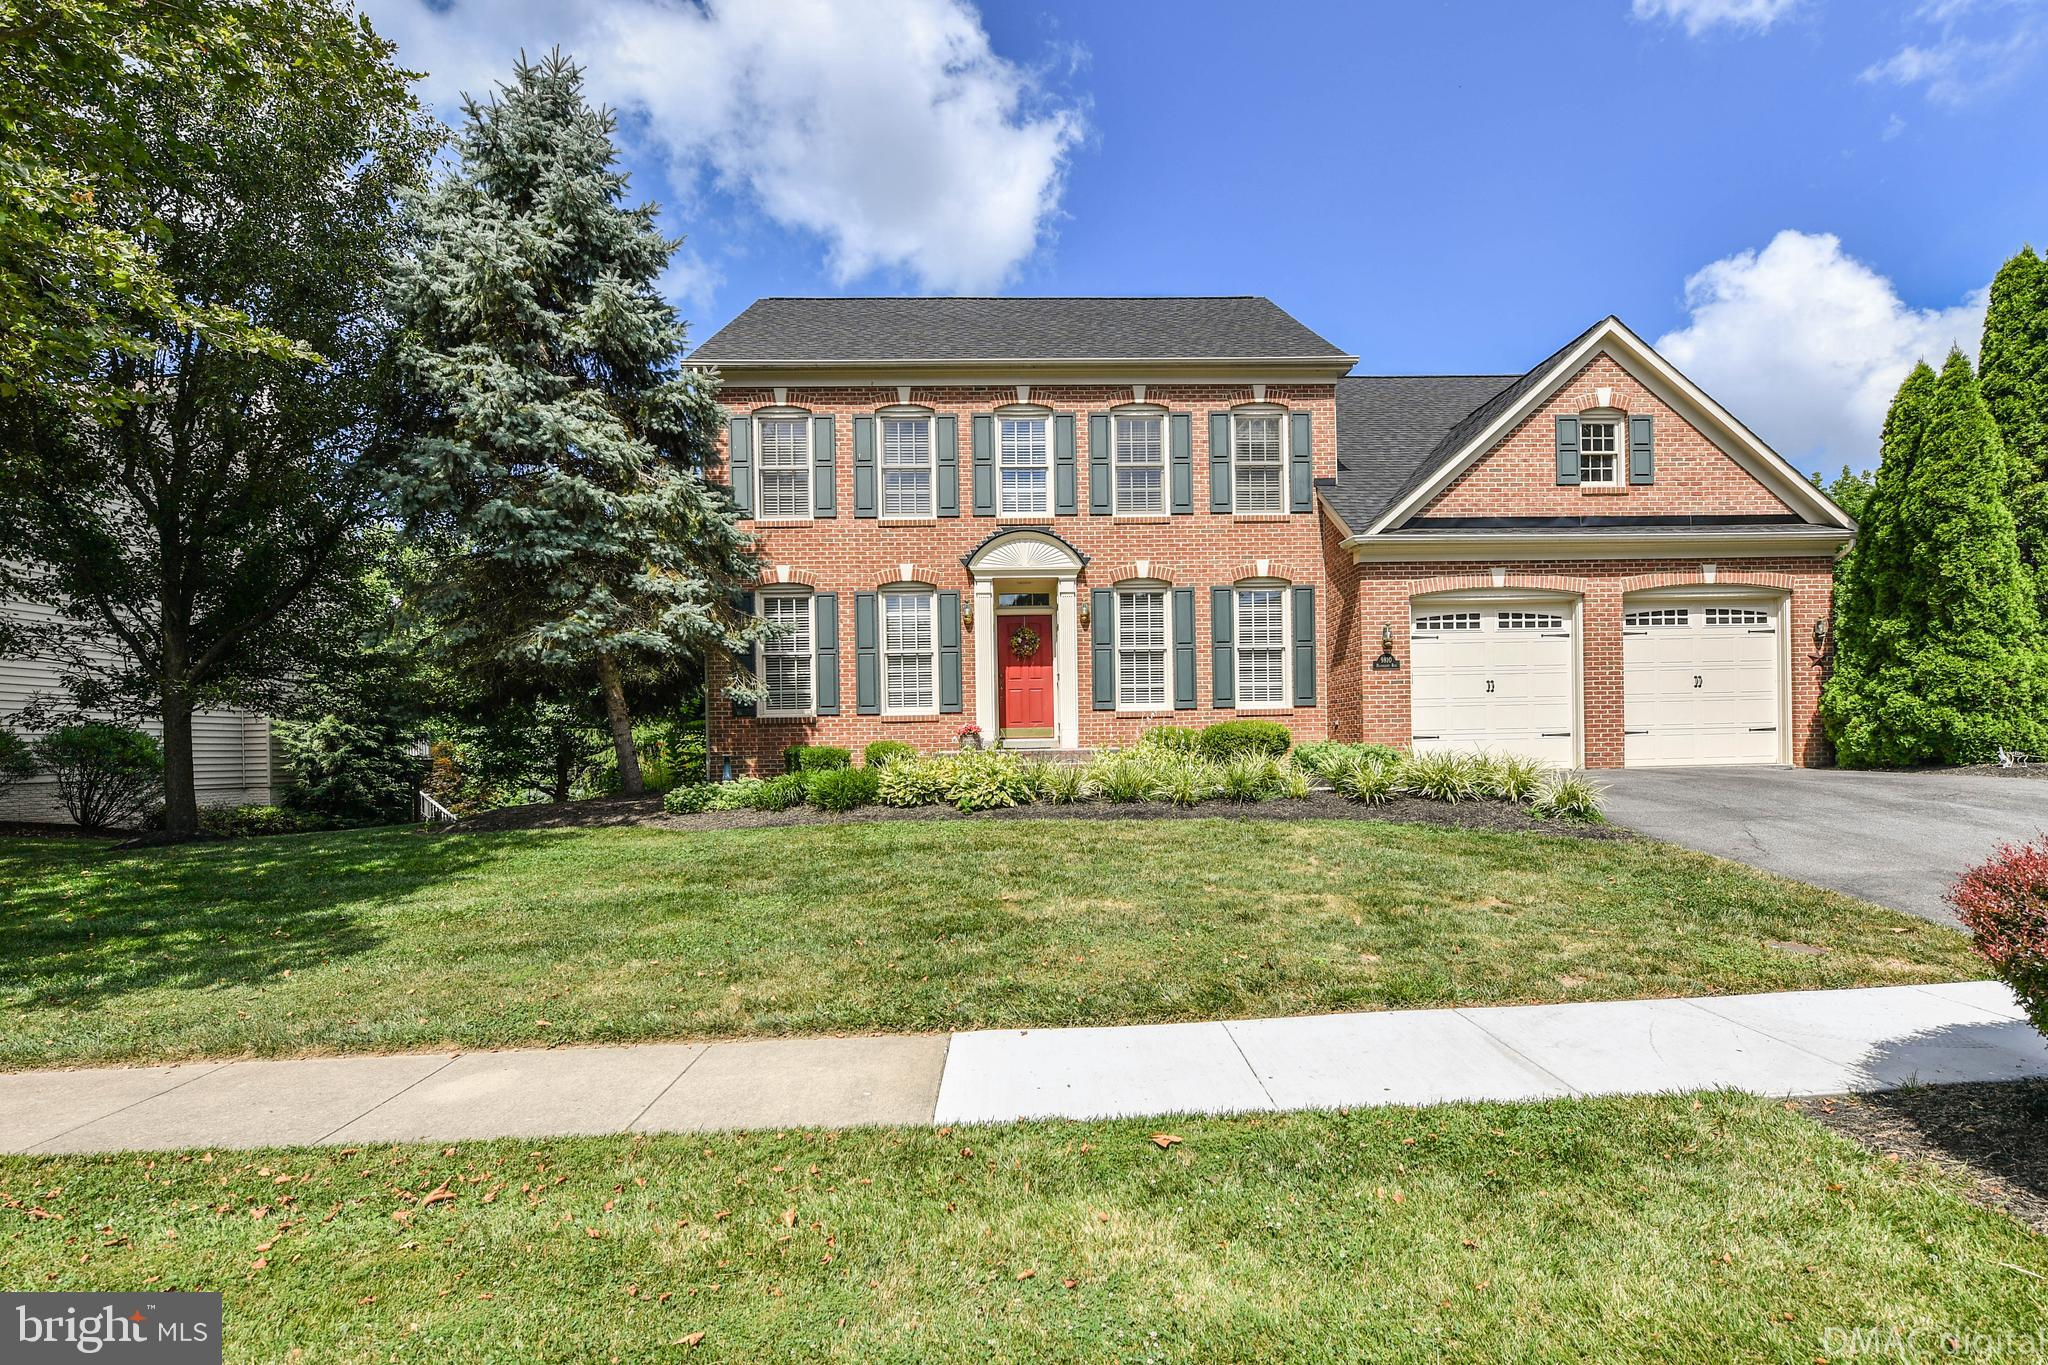 This beautiful brick front colonial is located in the golf course community of Holly Hills.  This ho